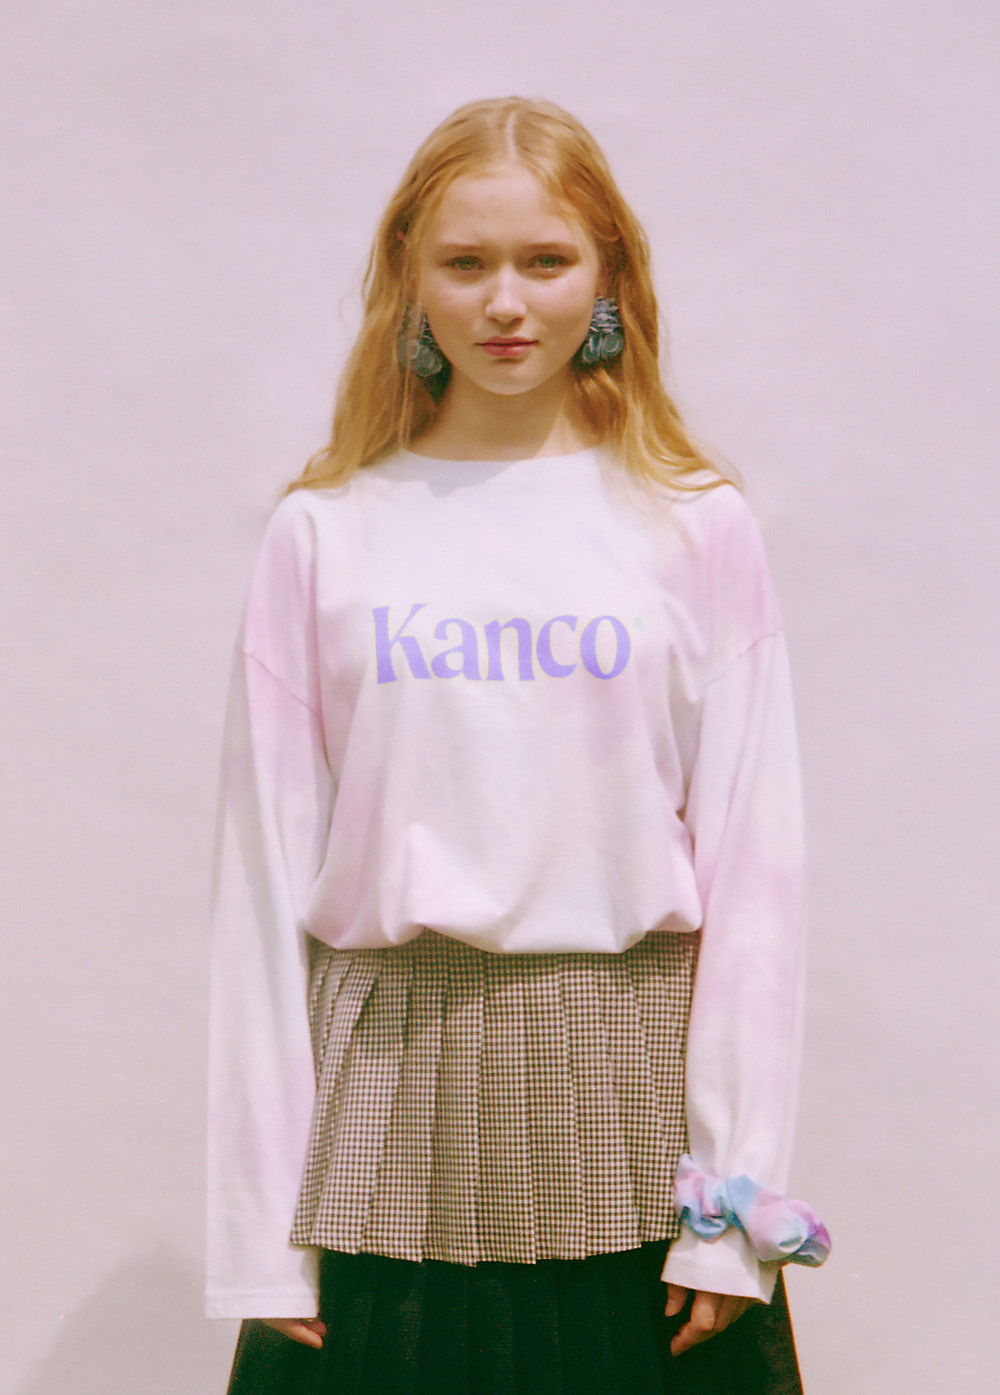 KANCO COTTON CANDY LONG SLEEVE TEE cotton candy